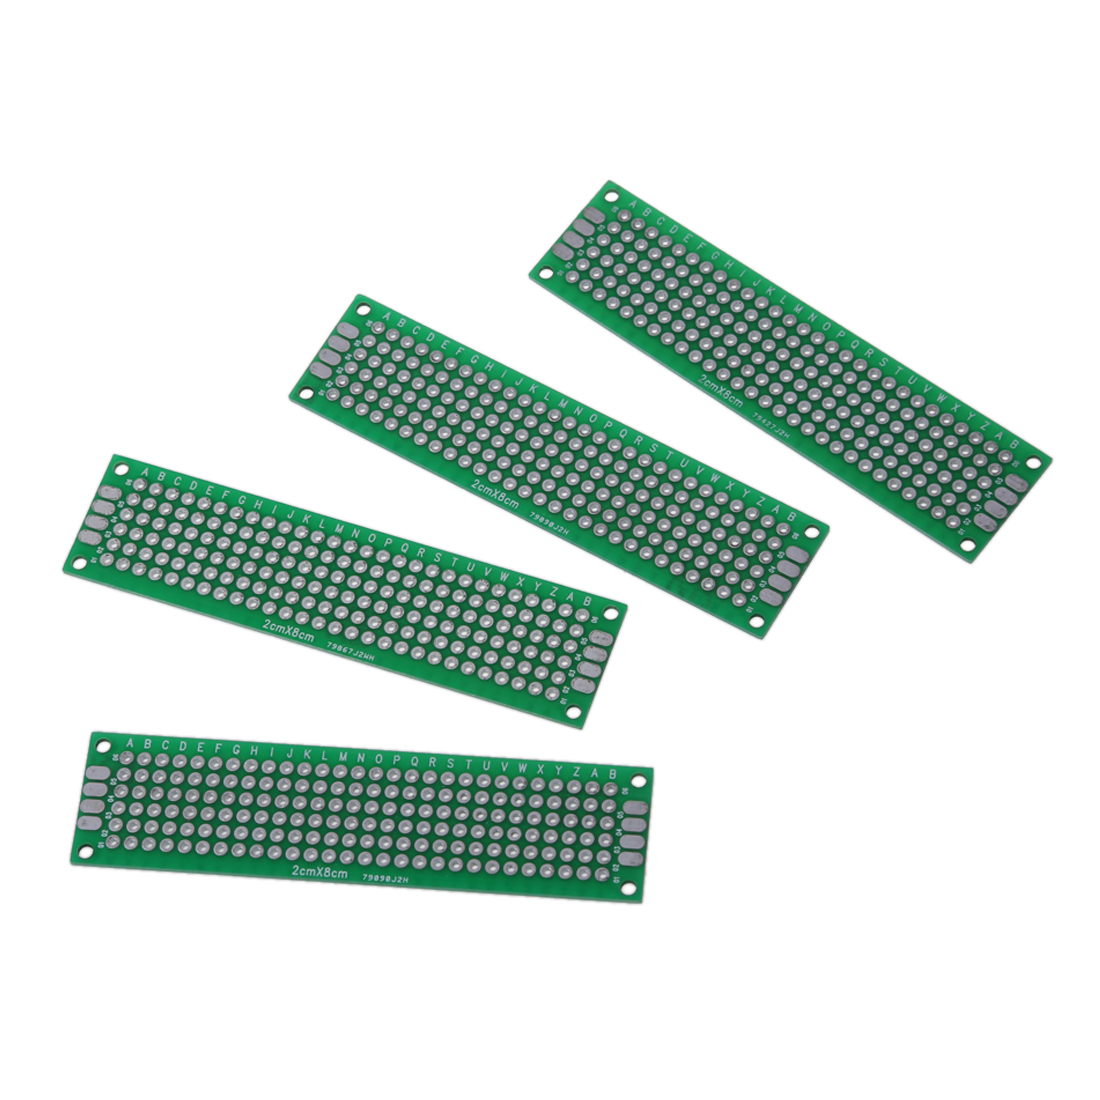 4pcs Double Side Prototype Universal Printed Circuit Board 28cm Pcb 7x9 Cm For Led Diy Project Ebay Item Specifics